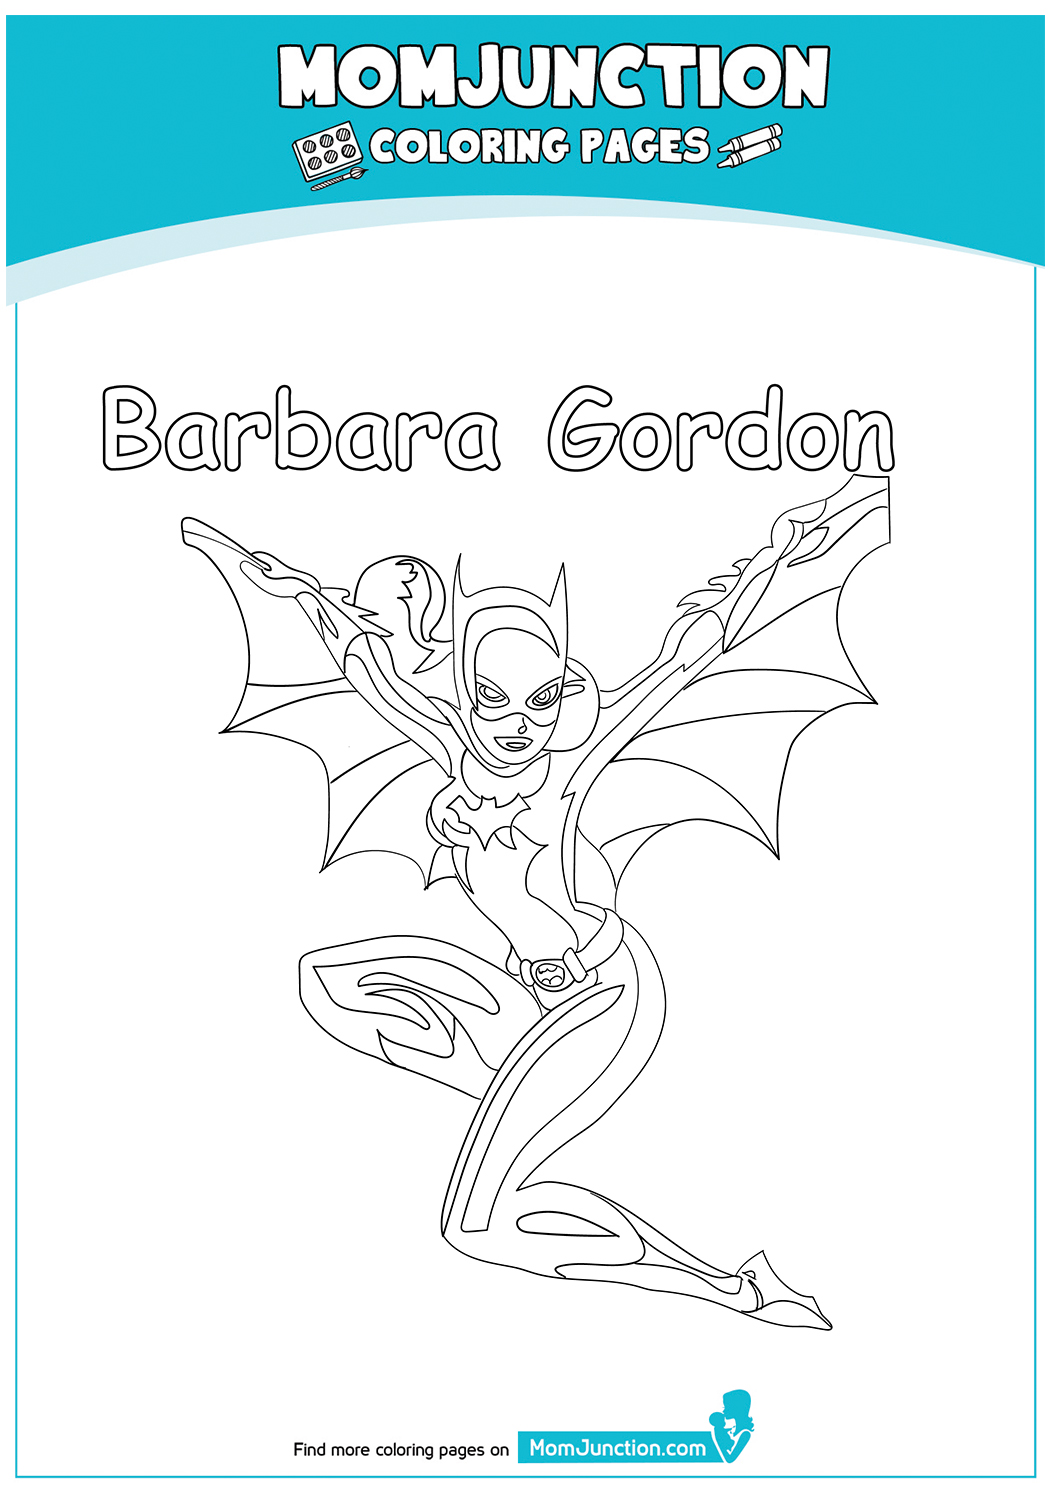 Barbara-Gordon-17